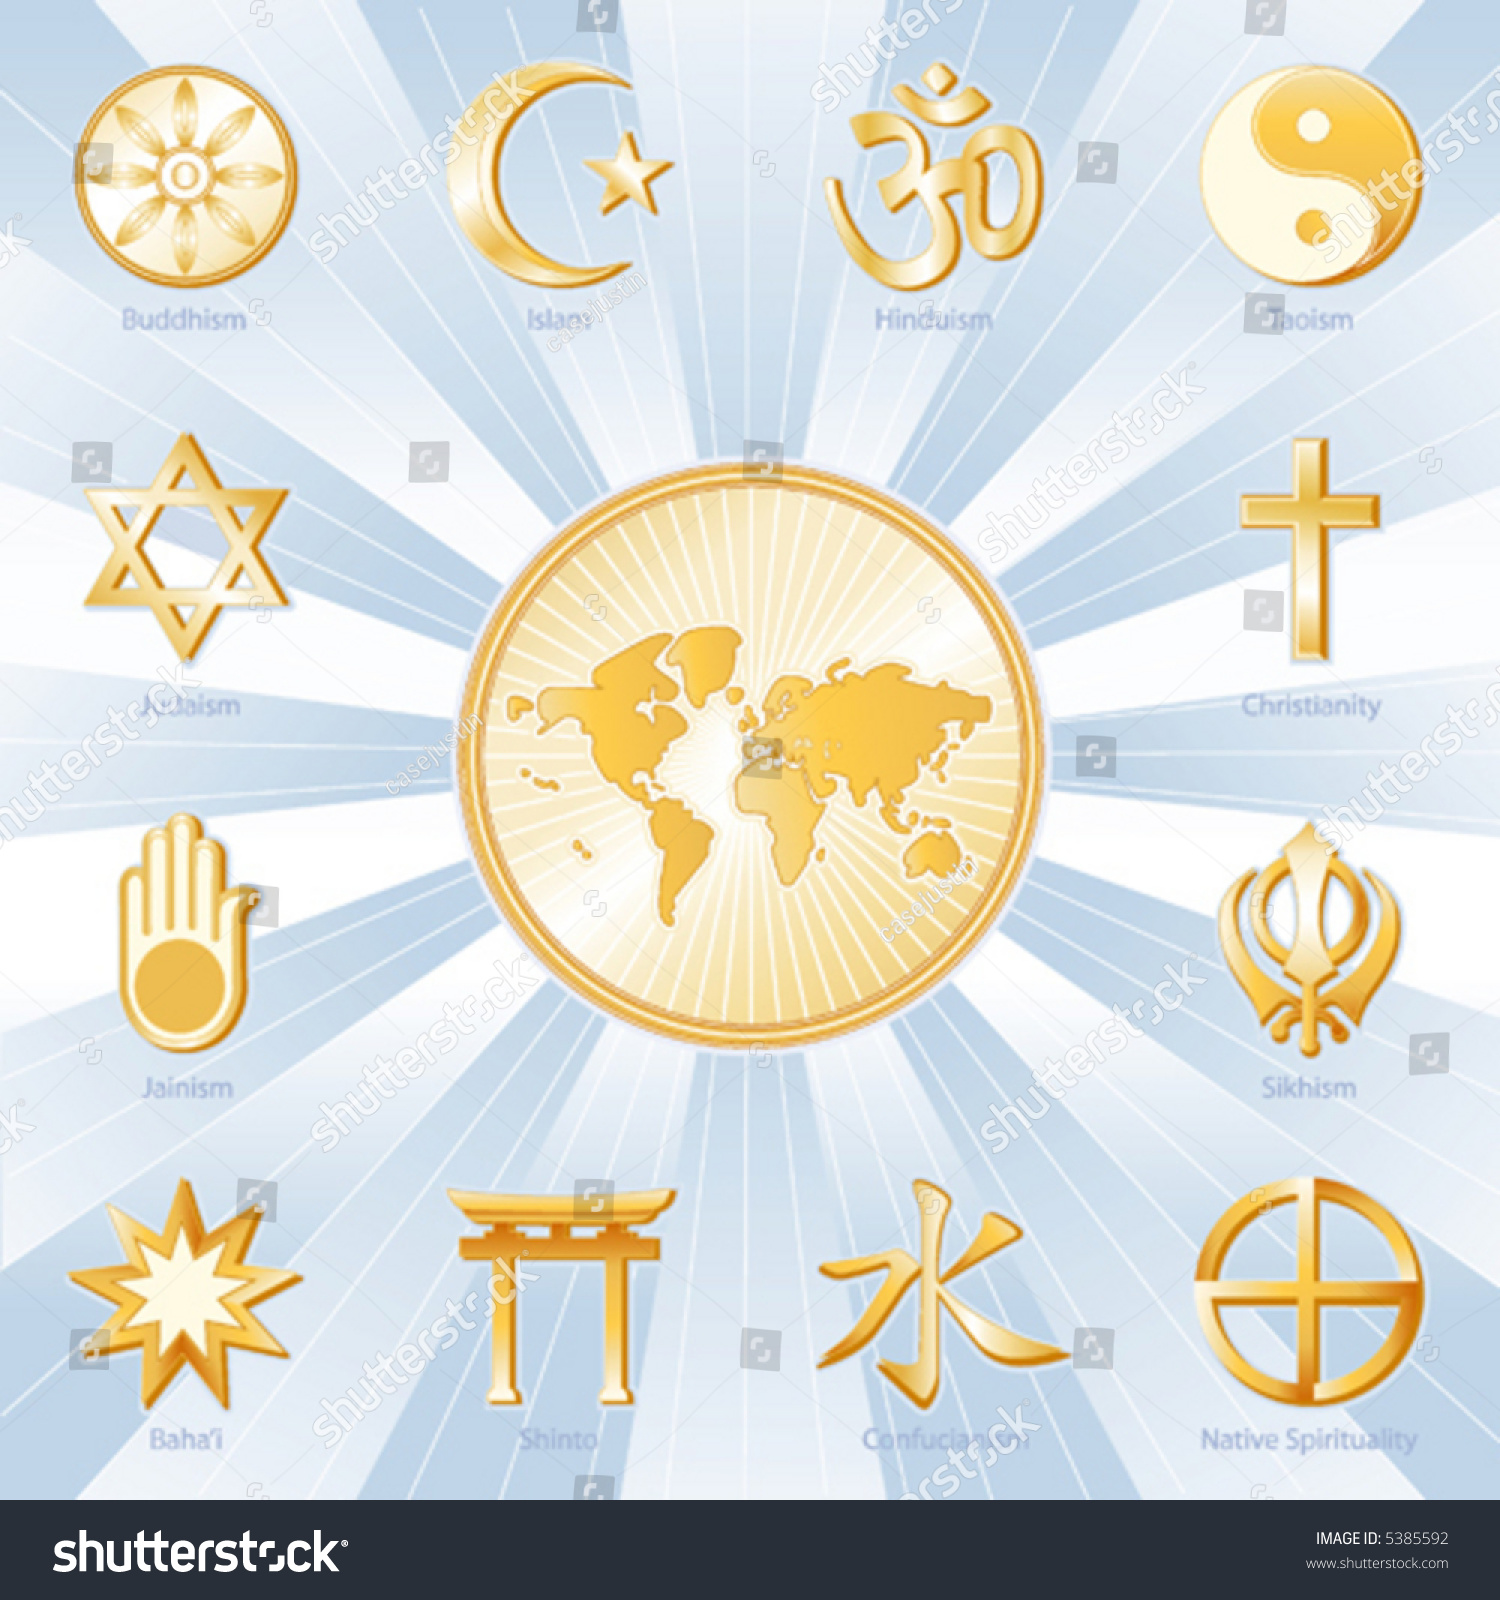 islam hindu religions The hindu religion is very old, diverse furthermore, the concept of one god is not central to hinduism as it is with the religion of islam in islam.